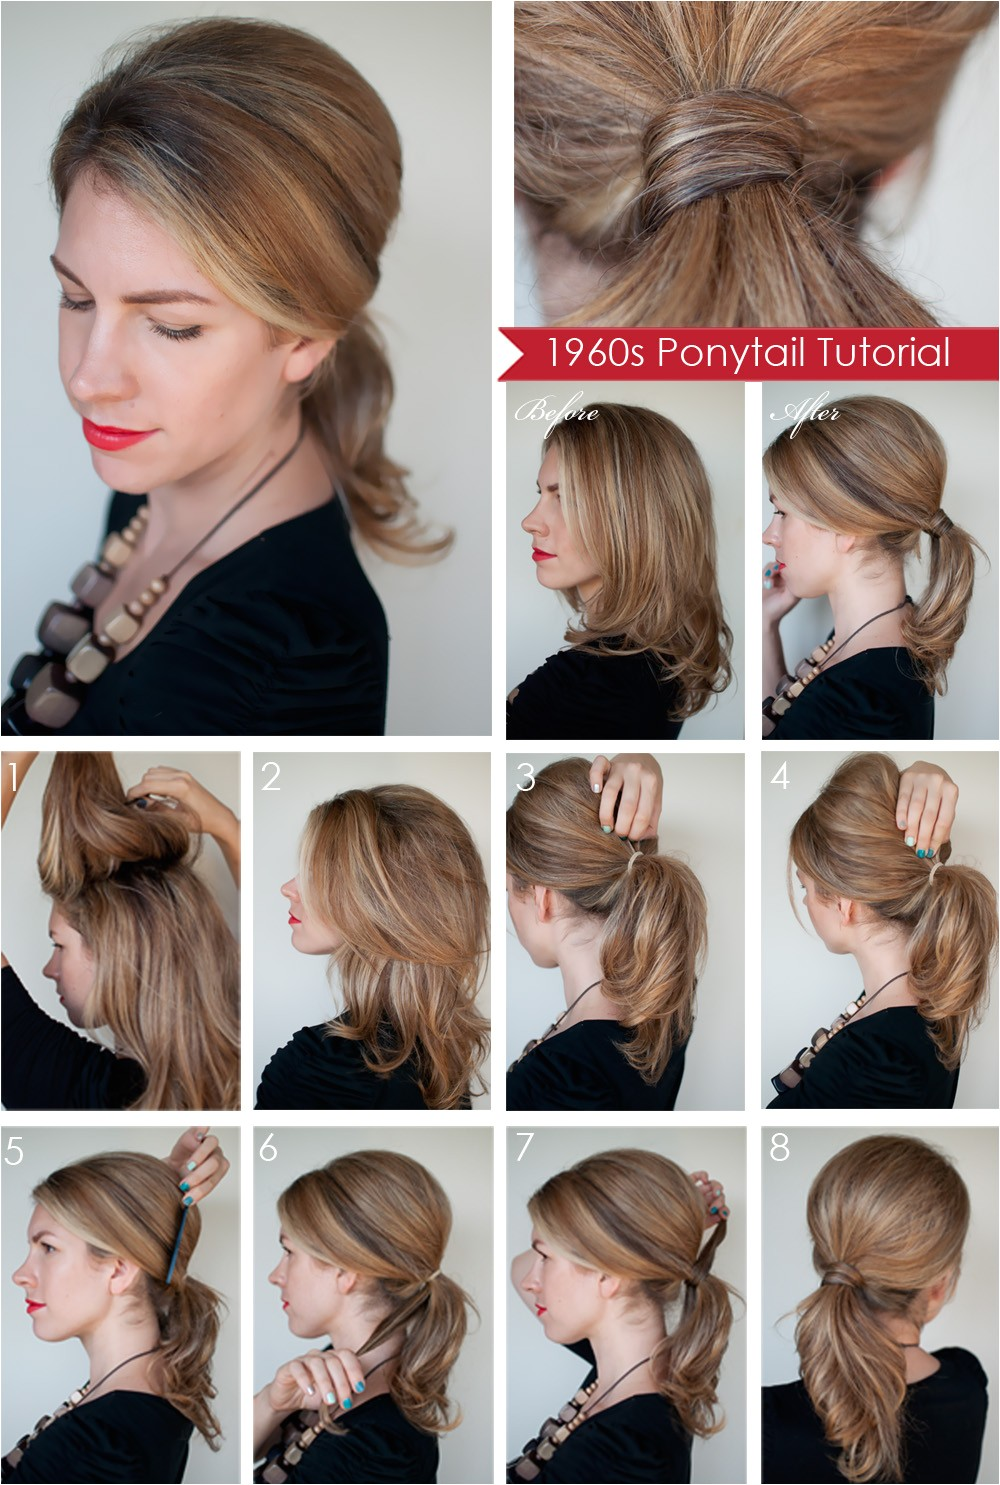 How to Make A Easy Hairstyle Hairstyle How to Create A 1960s Style Ponytail Hair Romance